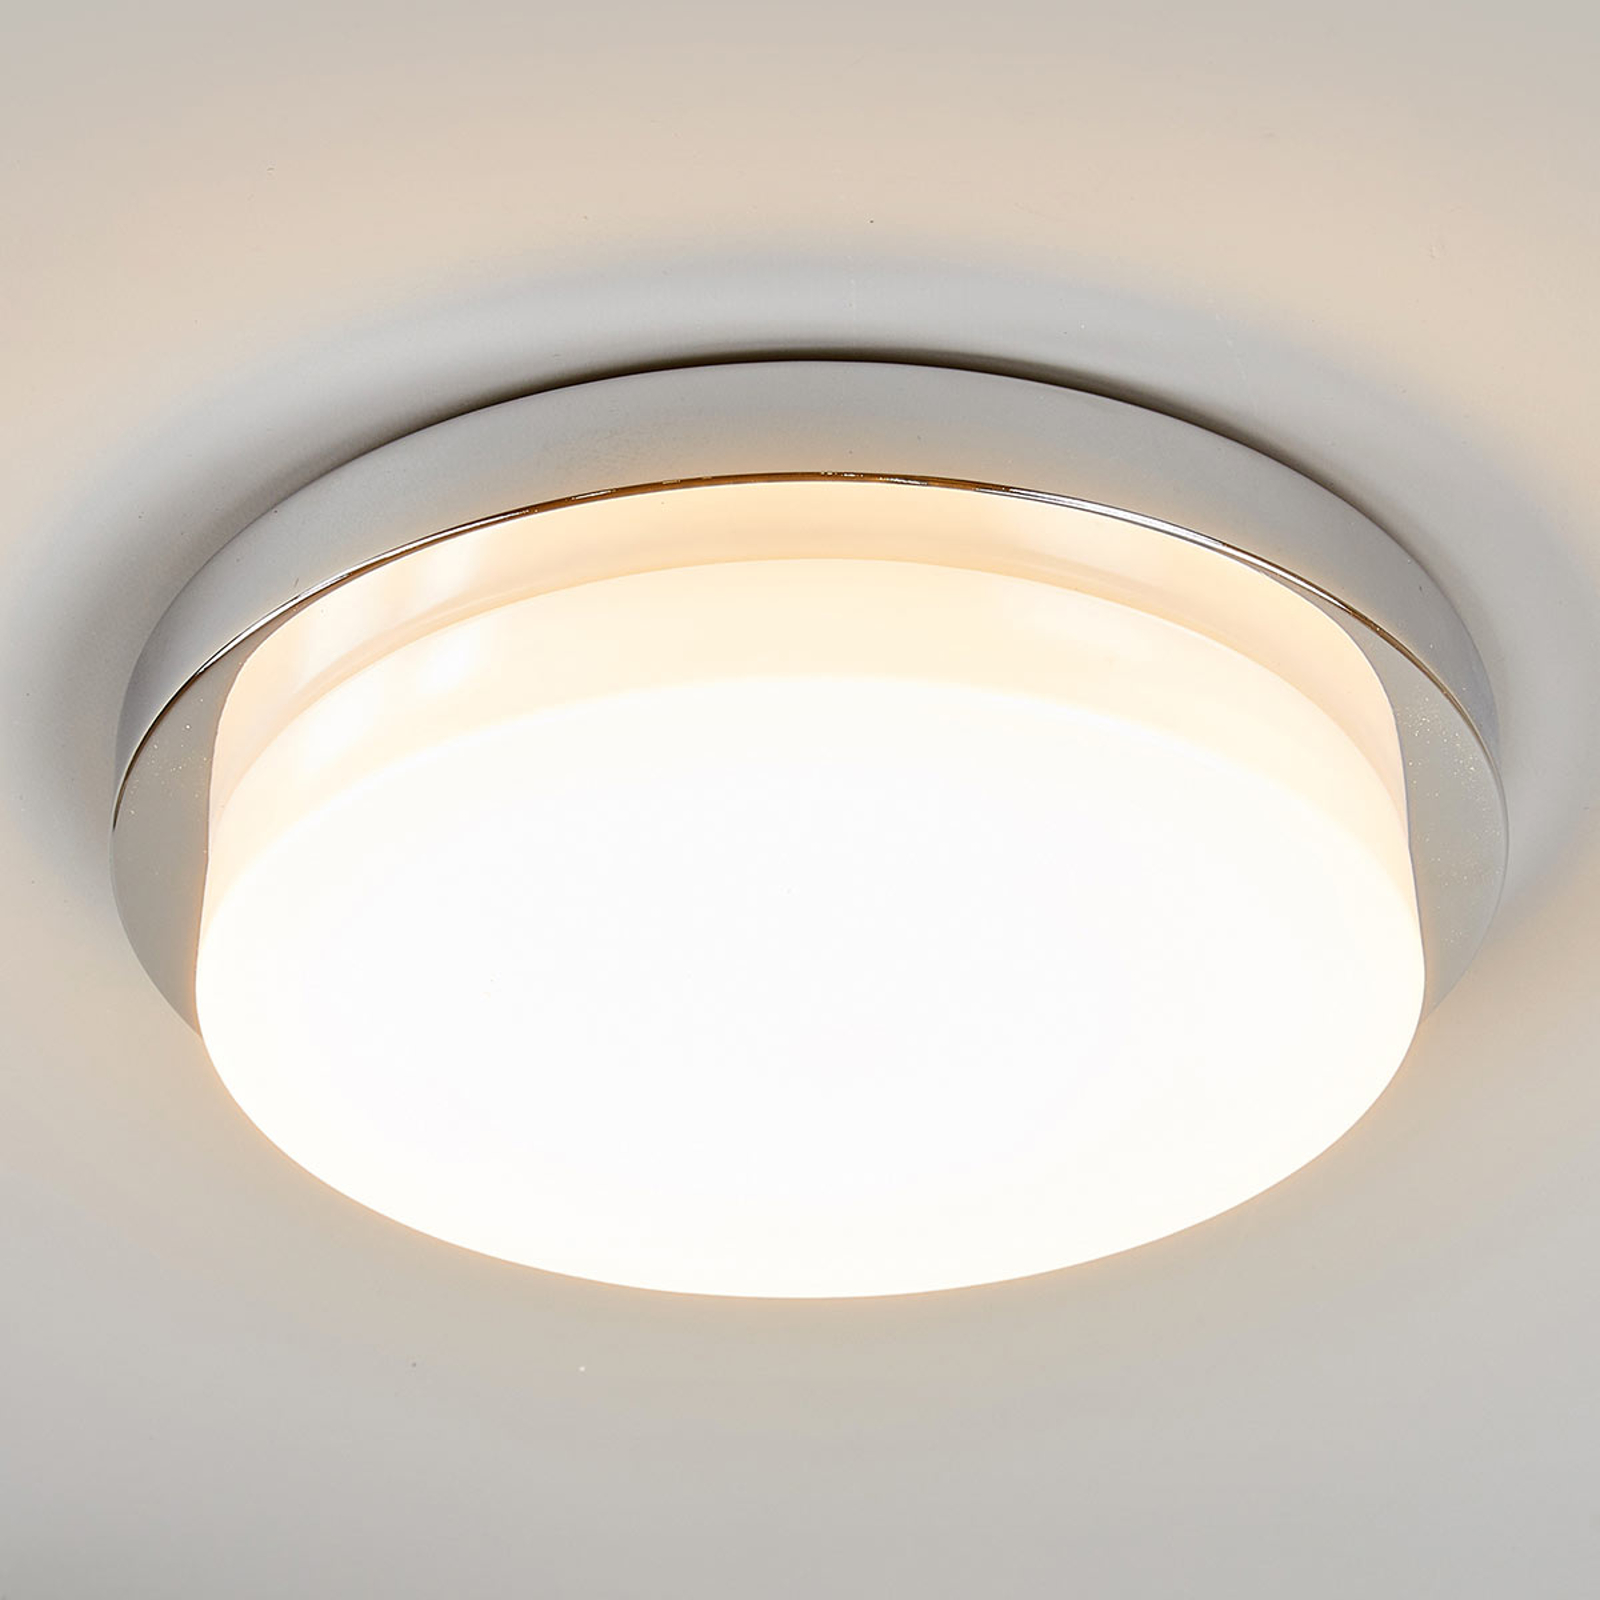 Plafonnier LED chromé brillant Cordula, IP44